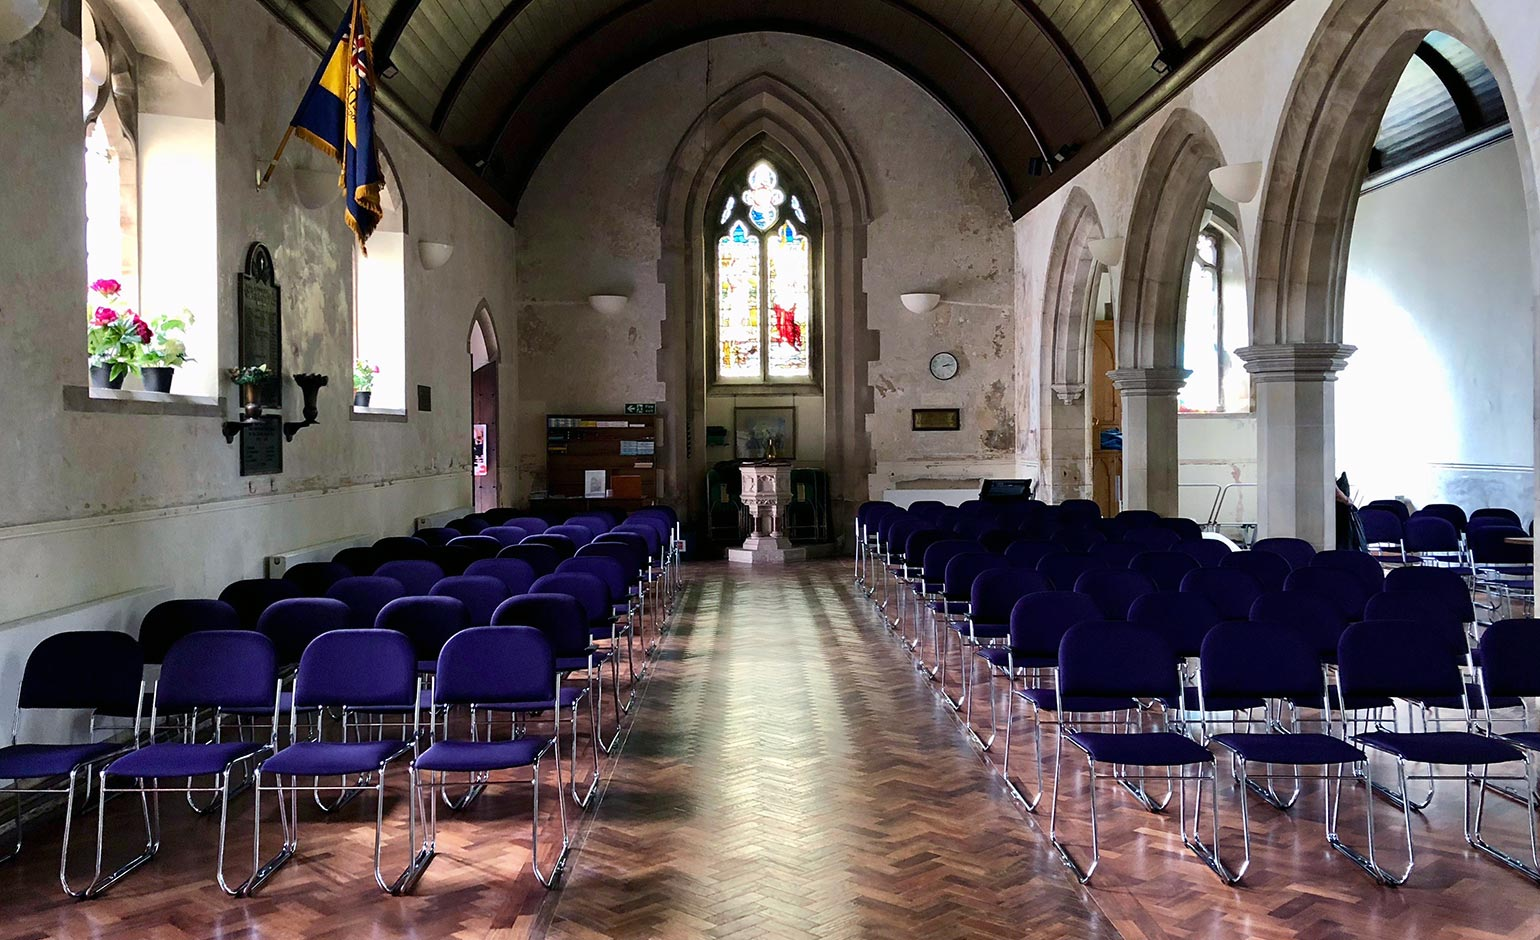 Peasedown church gets £25,000 makeover thanks to generous community